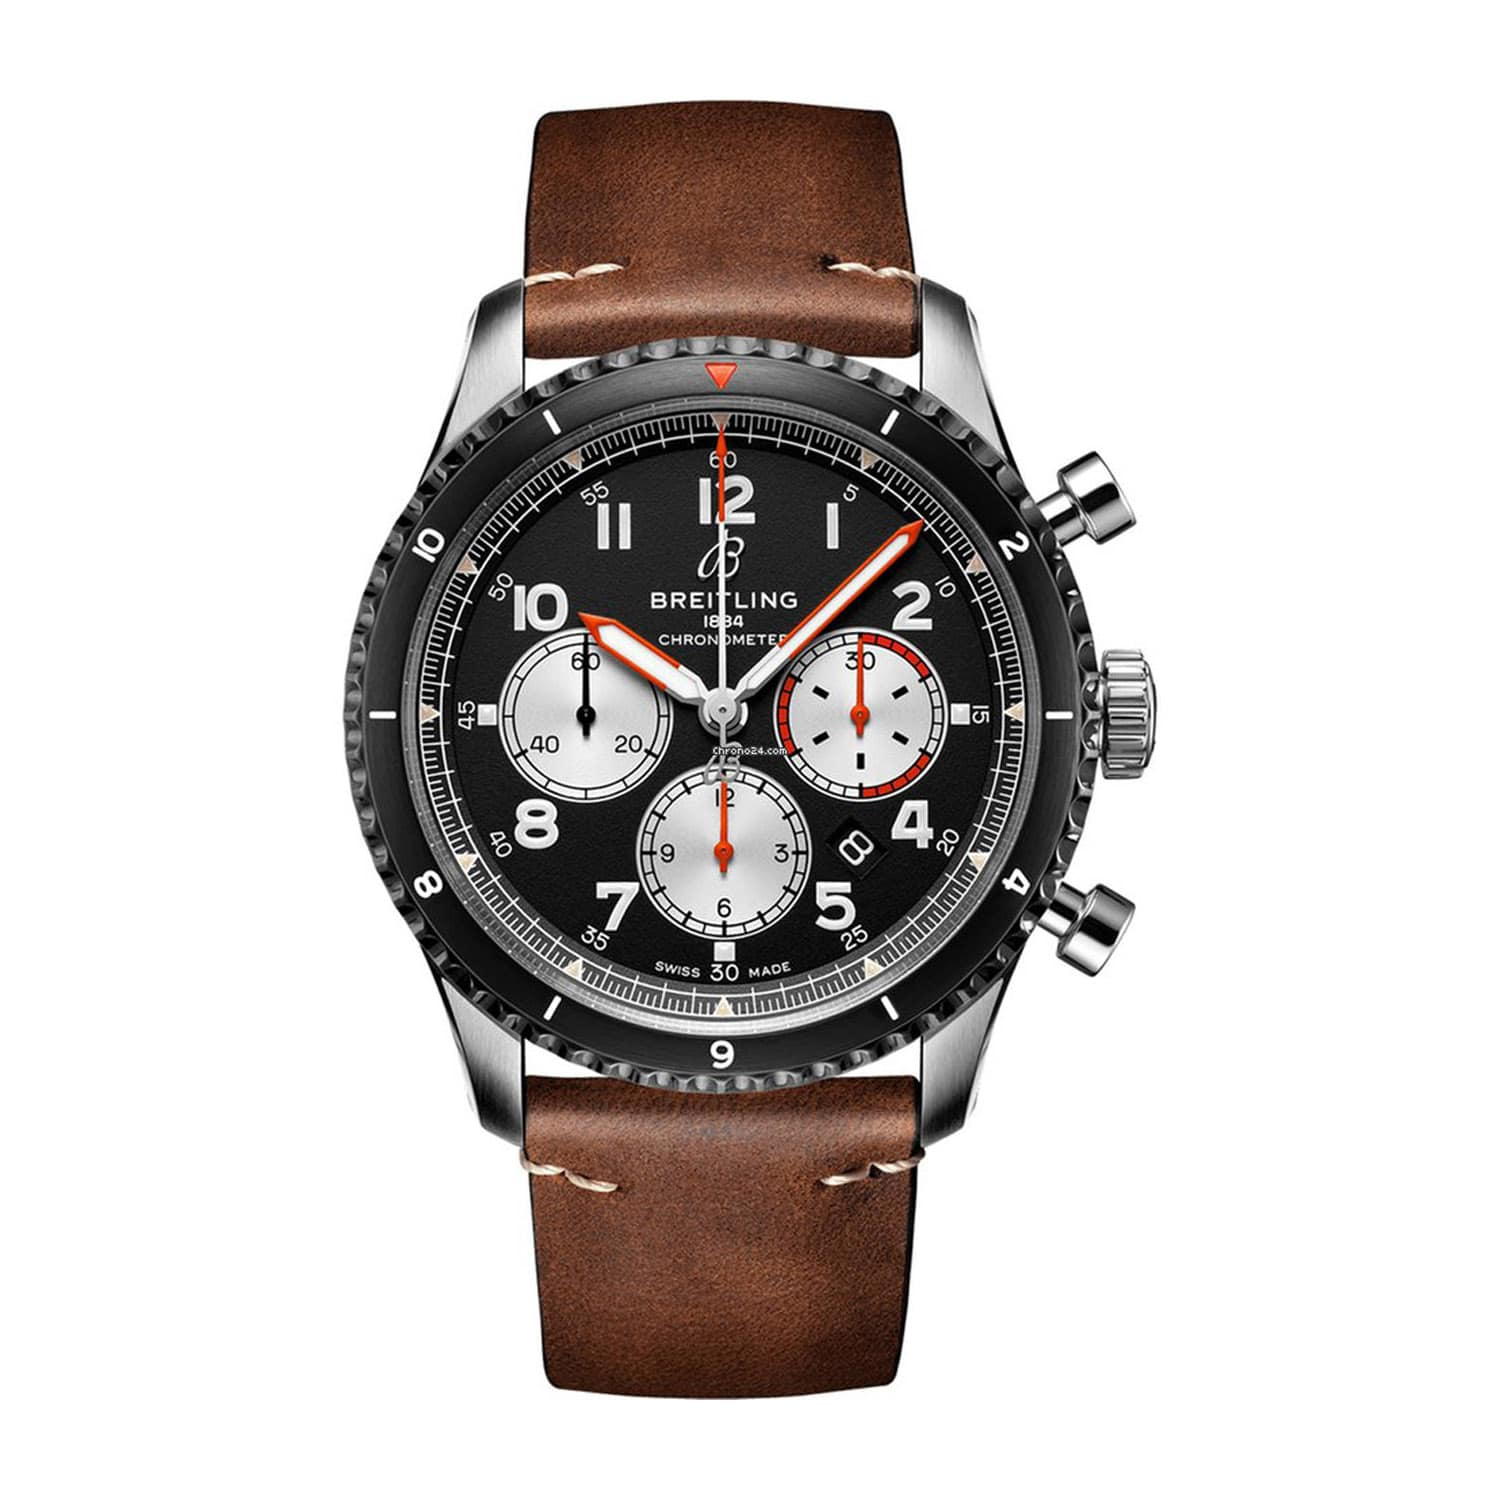 Breitling Aviator 8 43mm Mosquito Chronograph Steel Case Brown Strap Watch